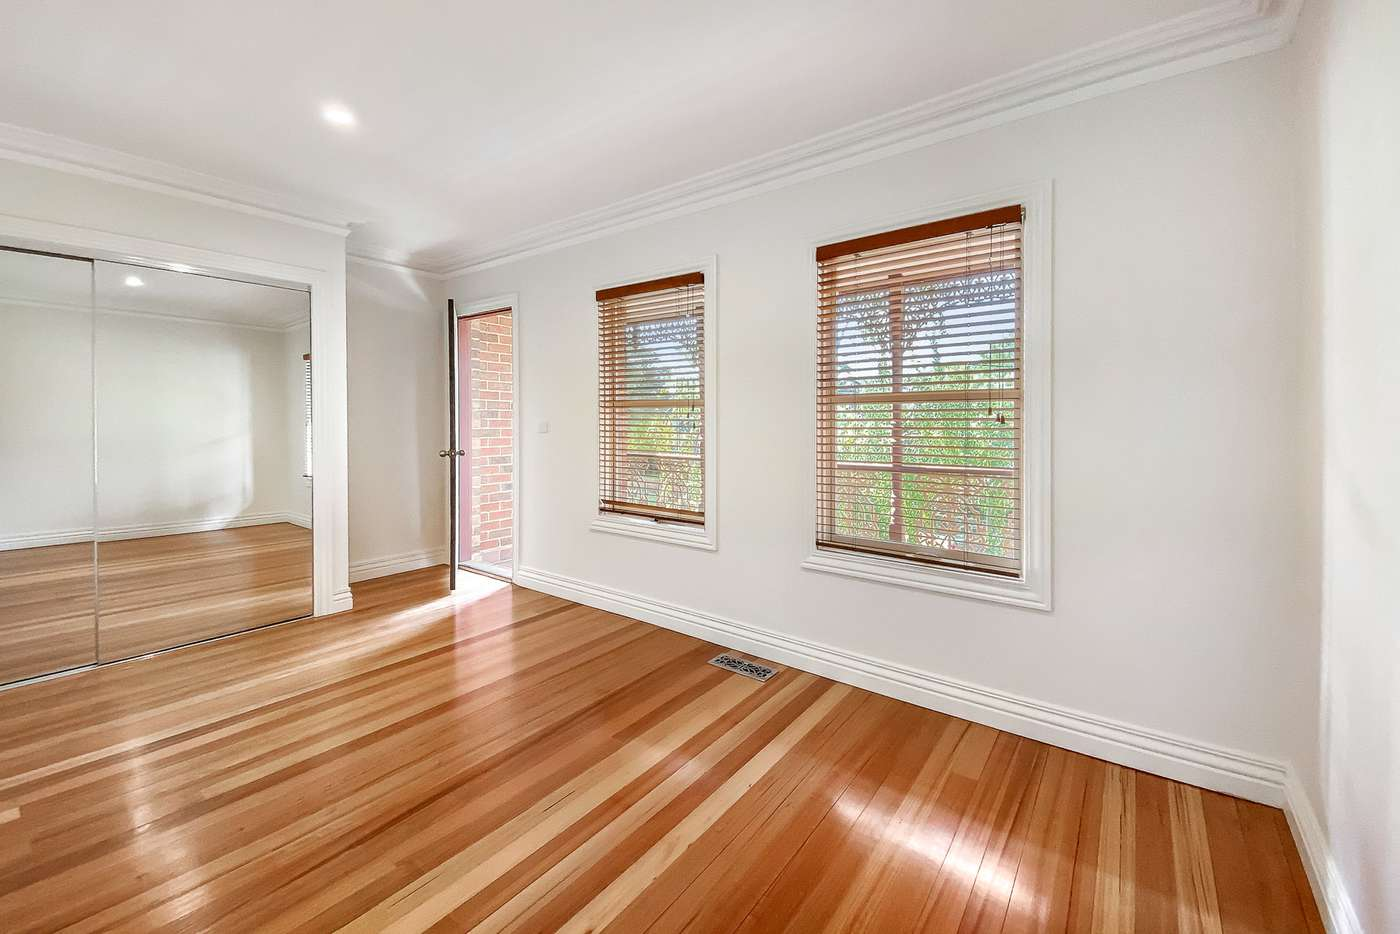 Seventh view of Homely house listing, 81 Leicester Street, Preston VIC 3072